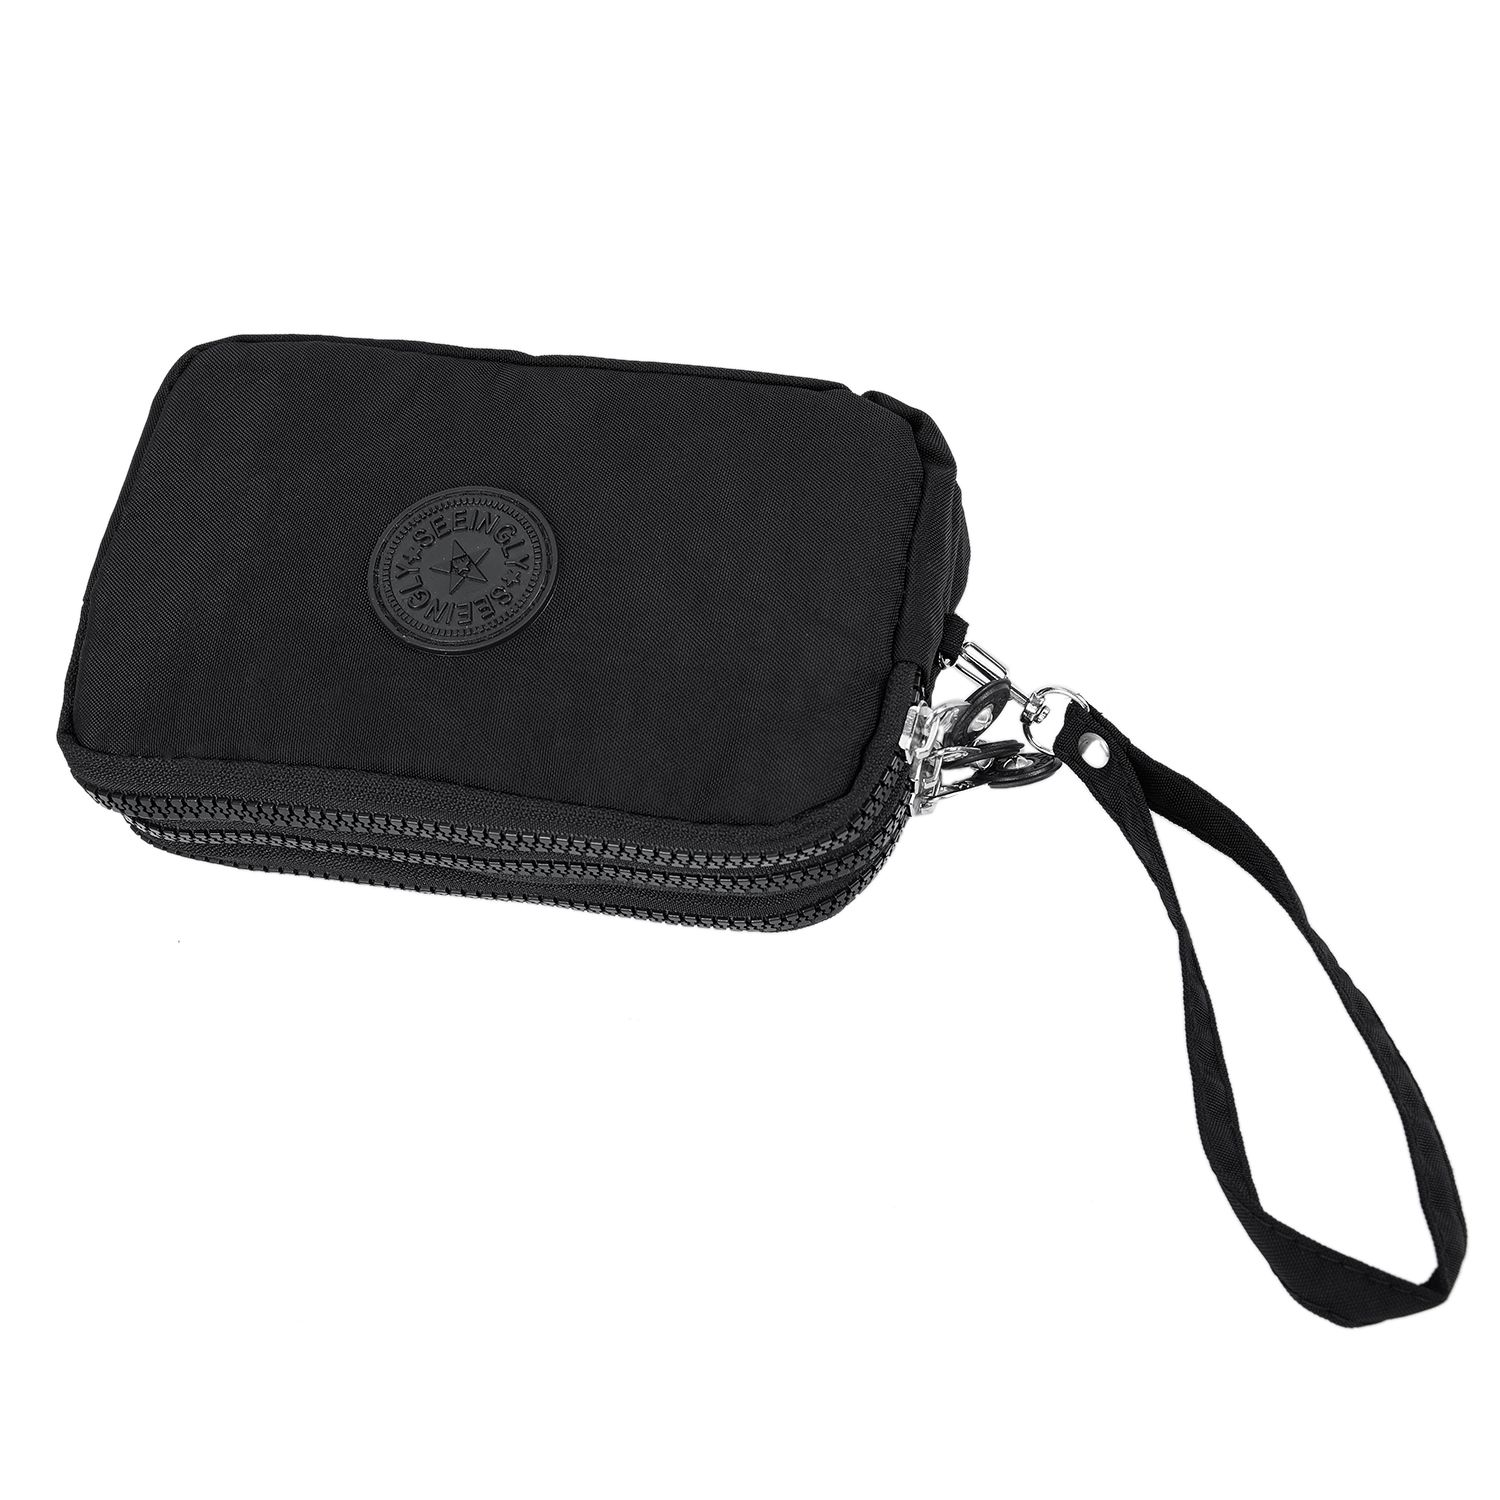 Fashion Women Small Wallet Washer Wrinkle Fabric Phone Purse Three Zippers Portable Make Up bag